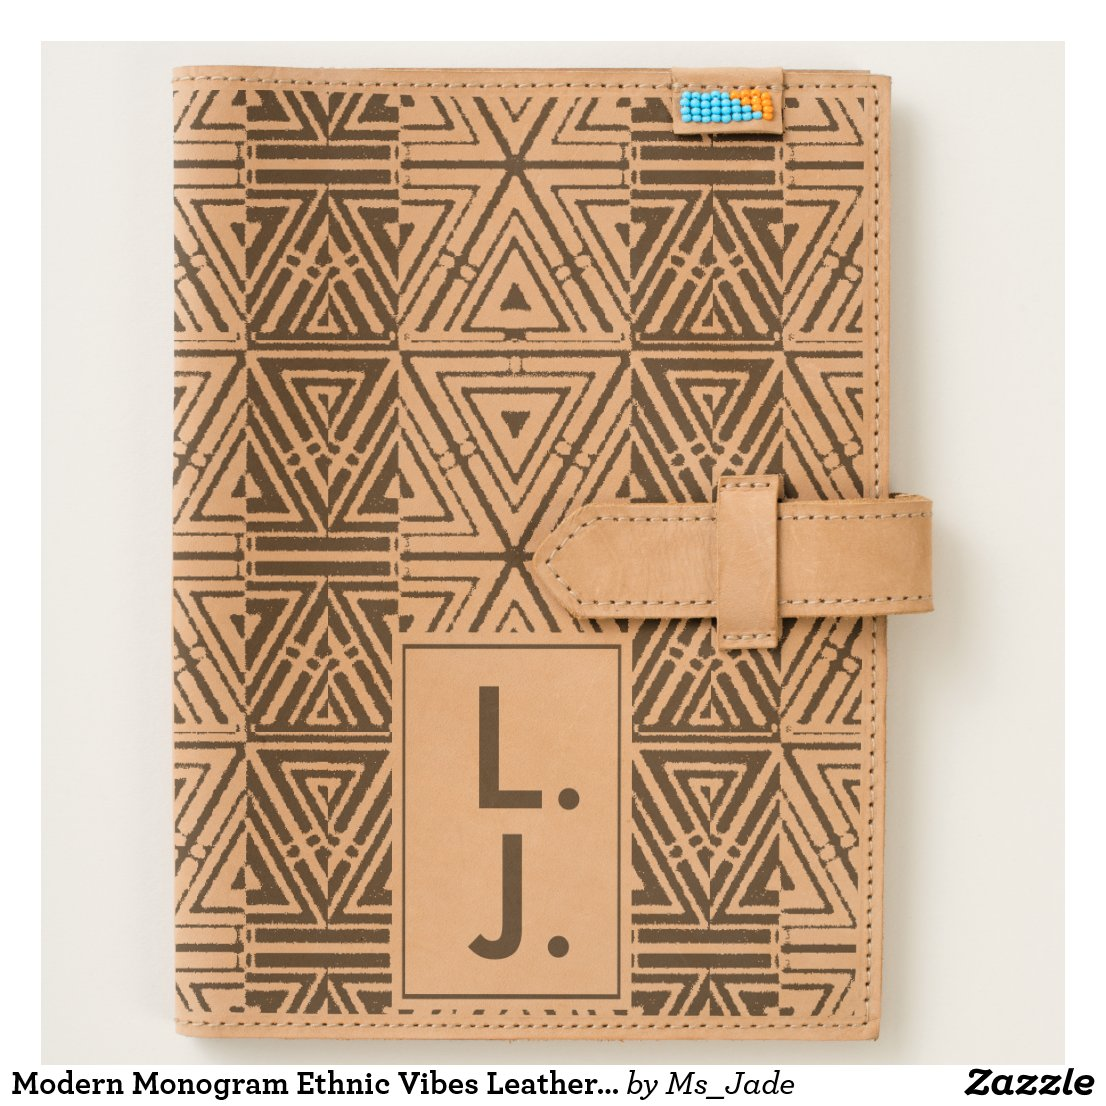 Modern Monogram Ethnic Vibes Leather Journal